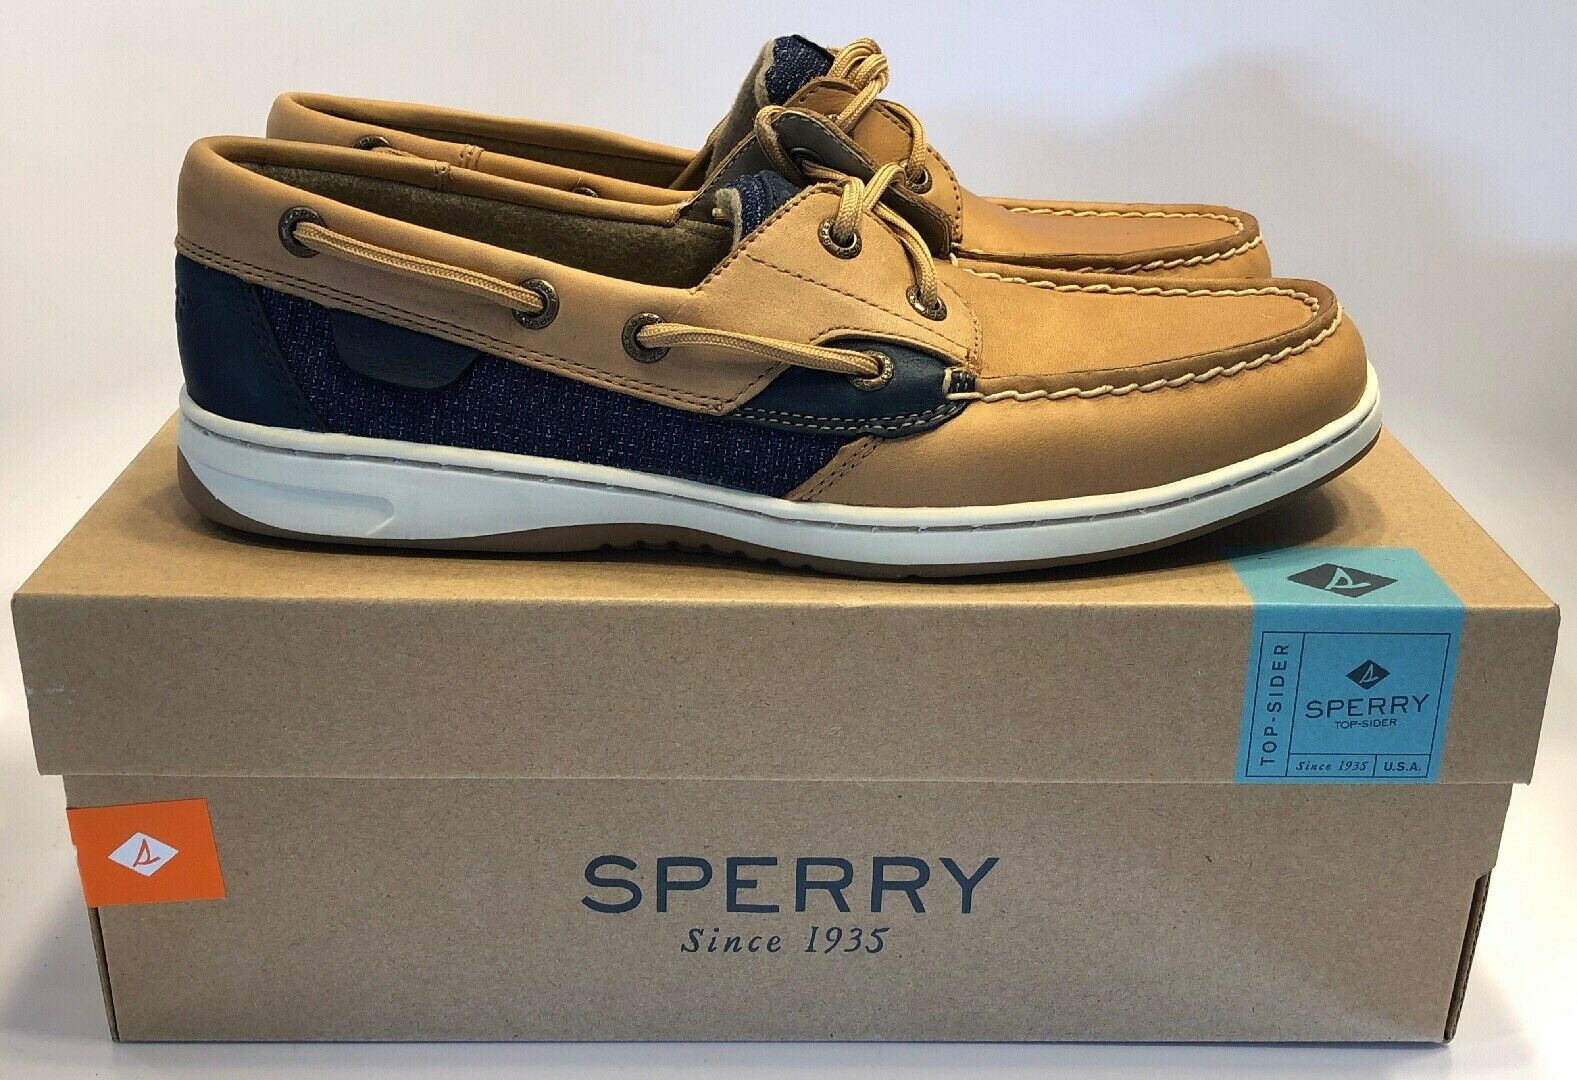 Sperry Top -Sider Wouomo blufish Nubby Linen Navy Boat  scarpe STS9433 US 8.5  risparmia il 35% - 70% di sconto